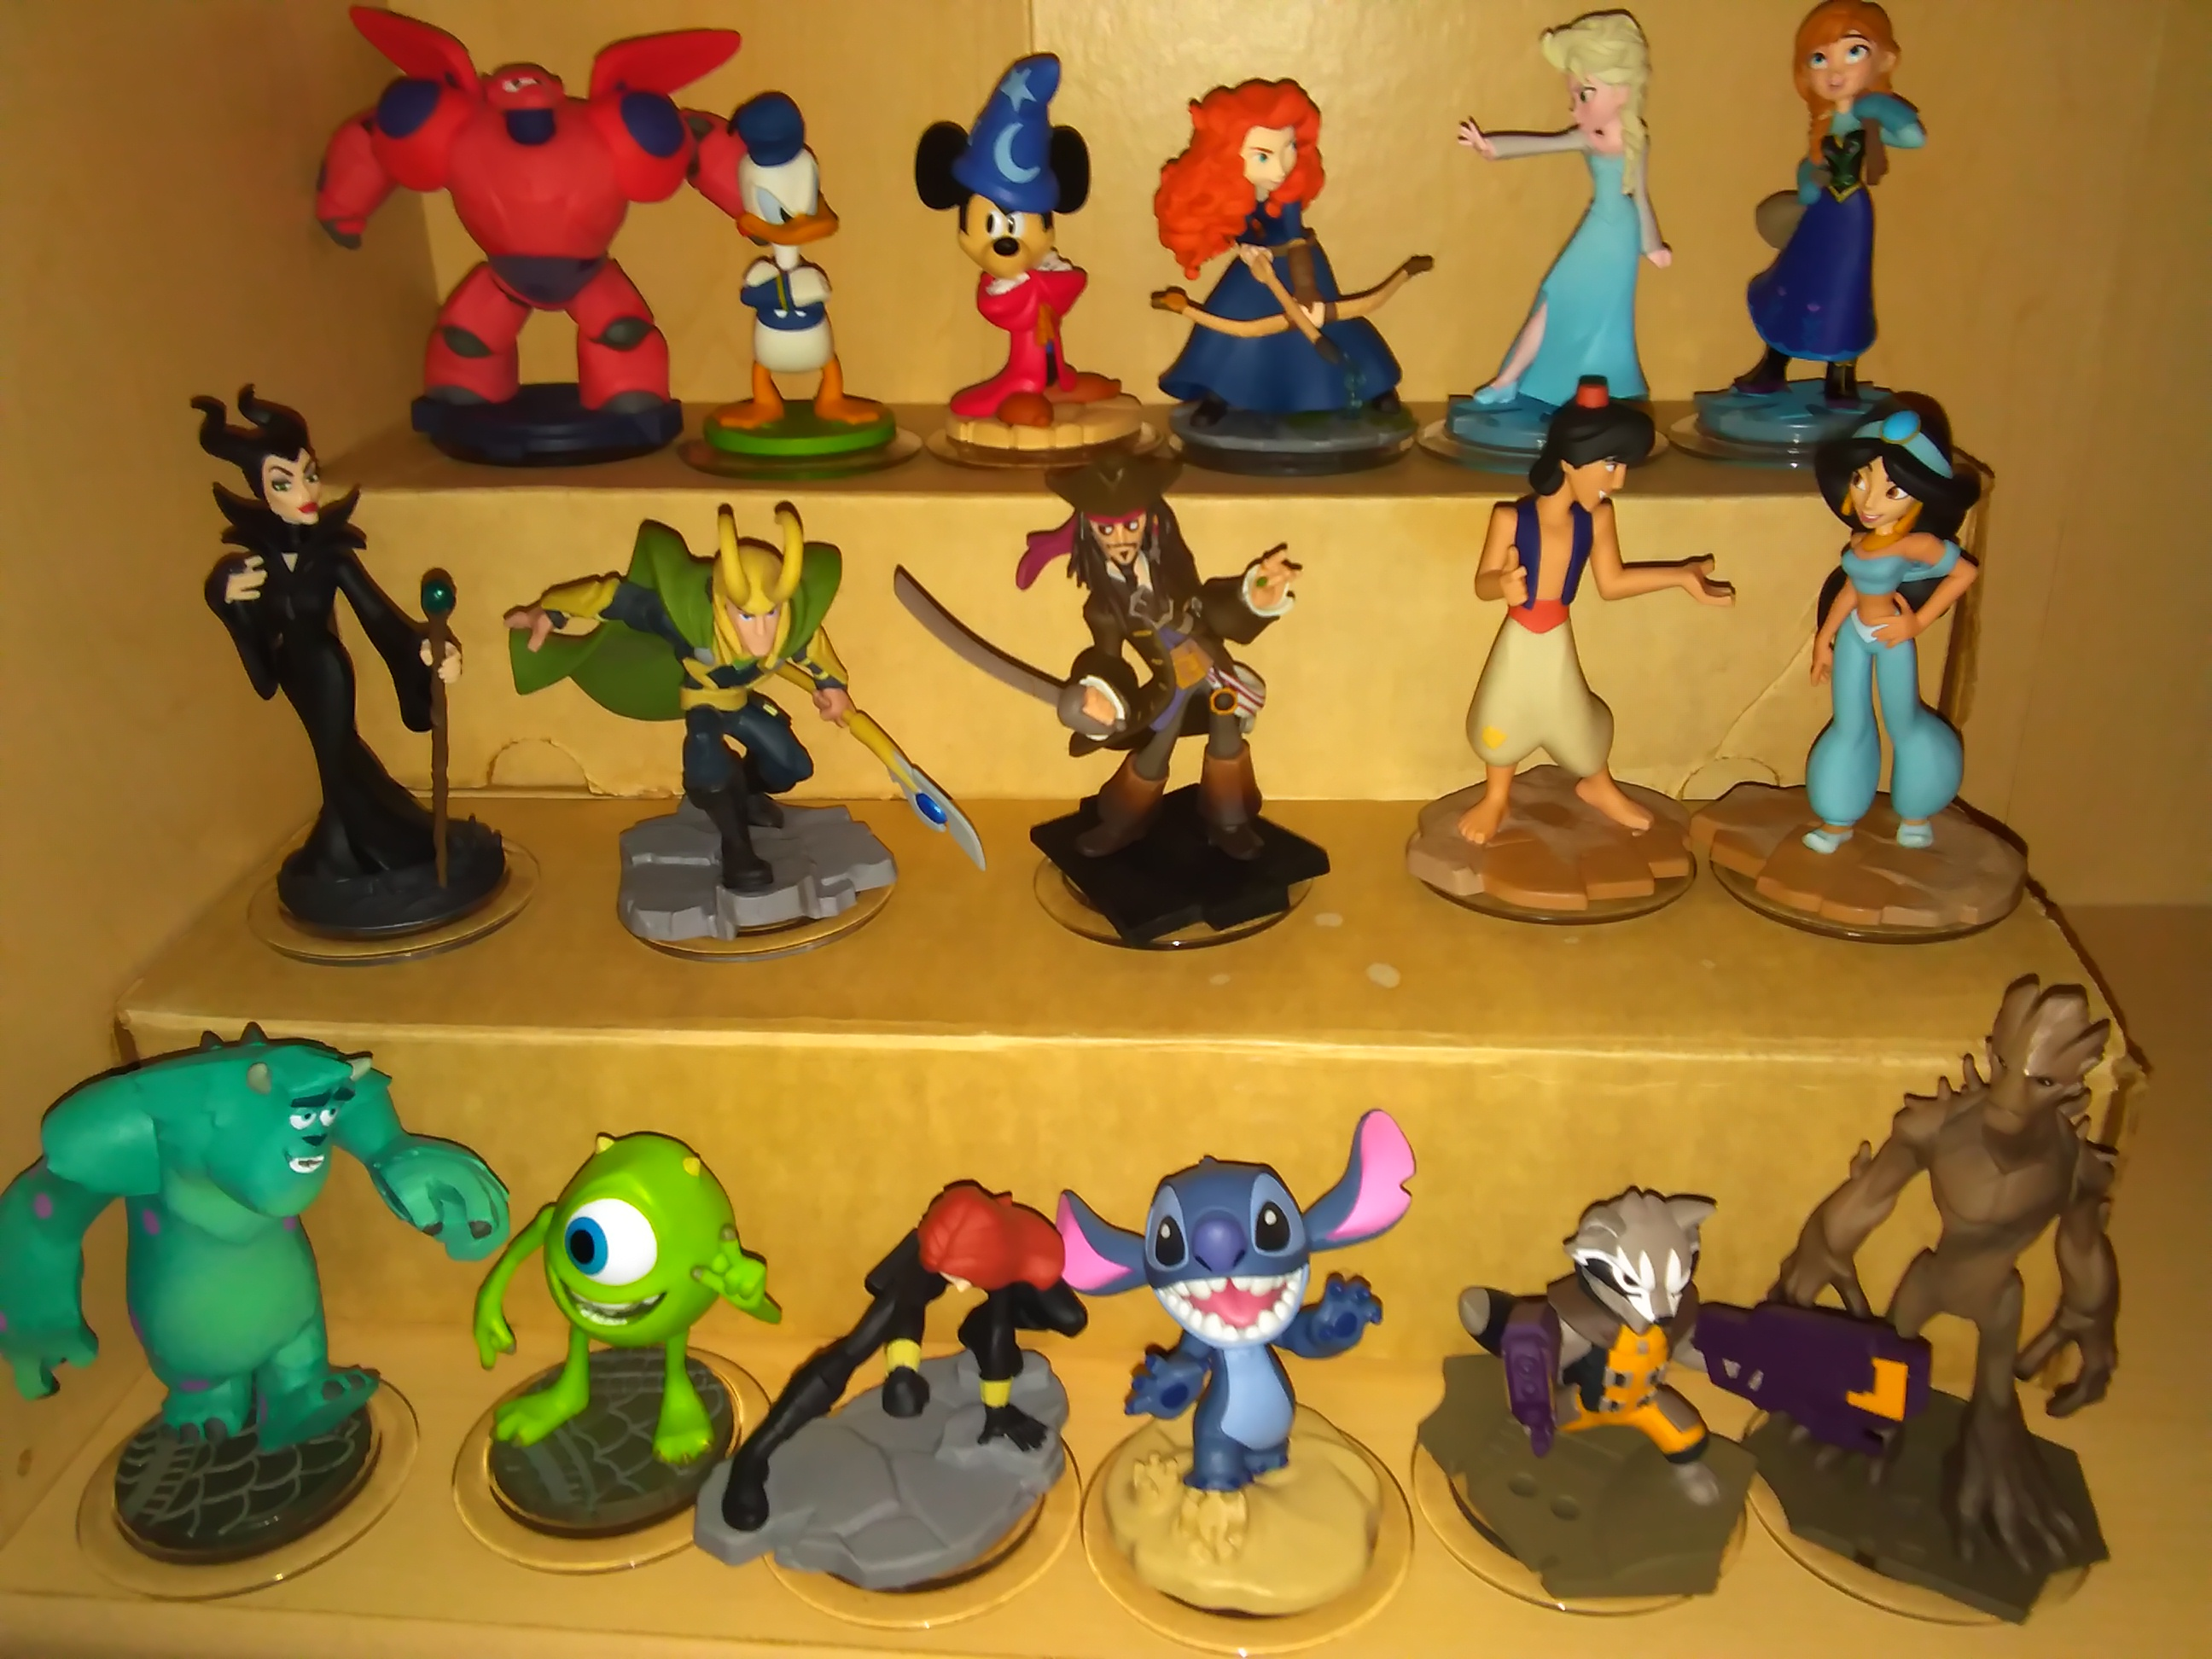 infinity 4 0. disney infinity: a whole new world | monkey queen books infinity 4 0 p